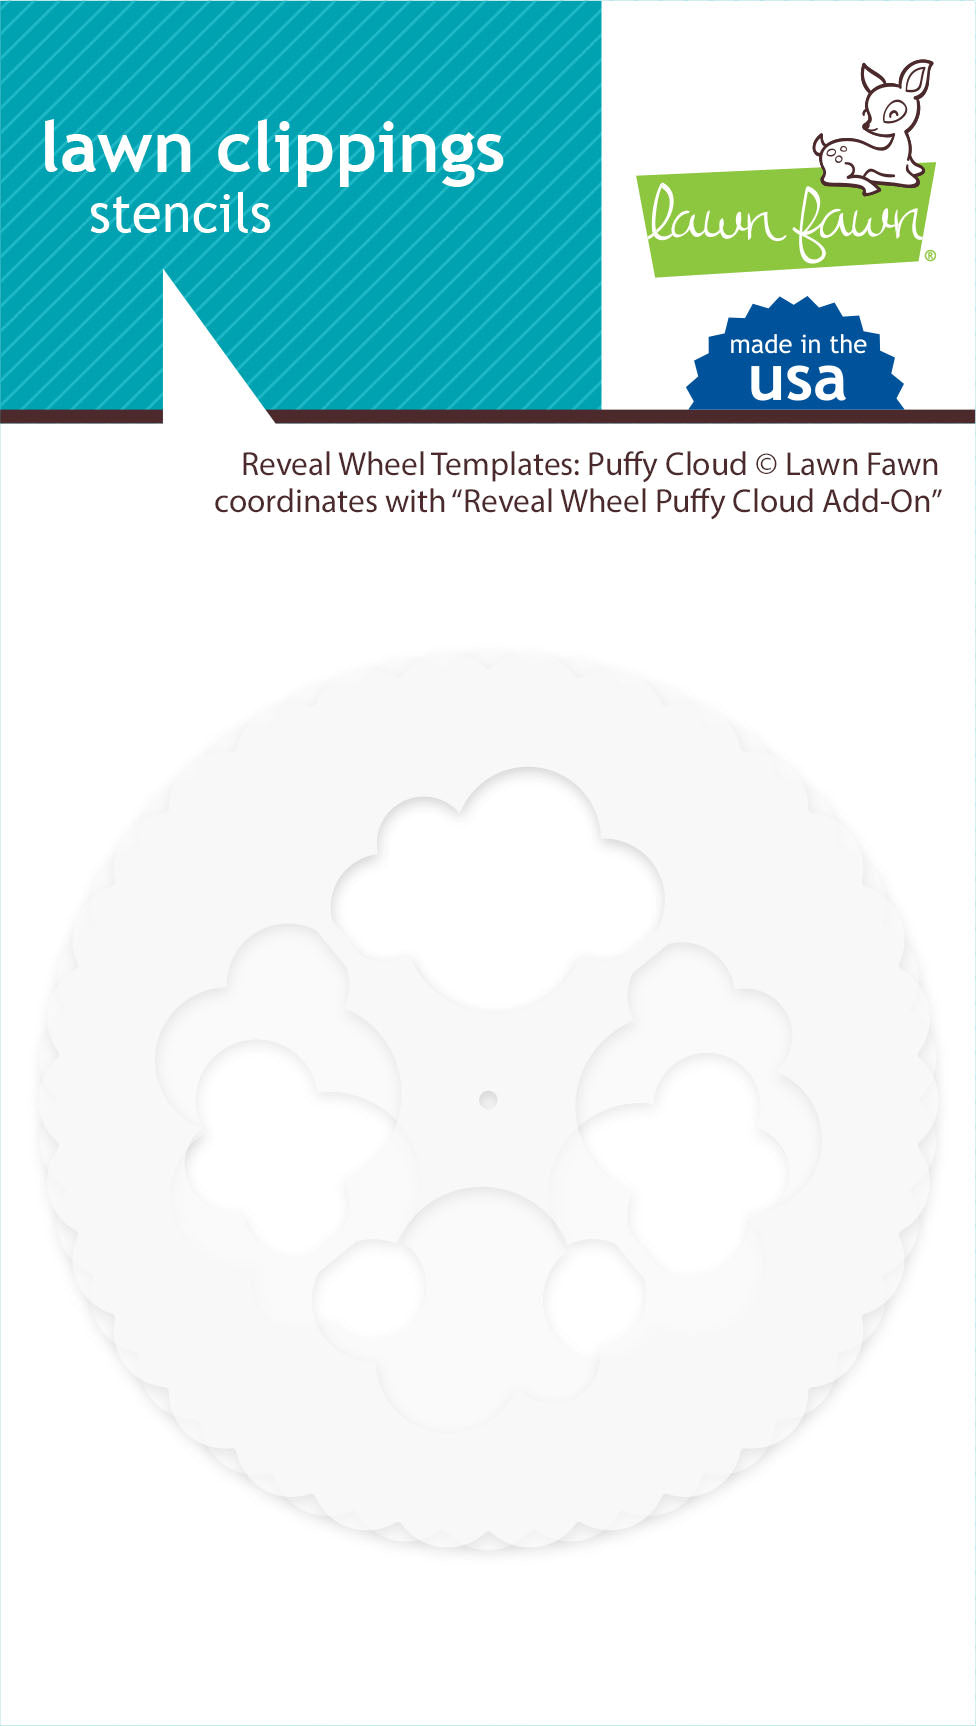 Reveal Wheel Templates: Puffy Cloud Add-On